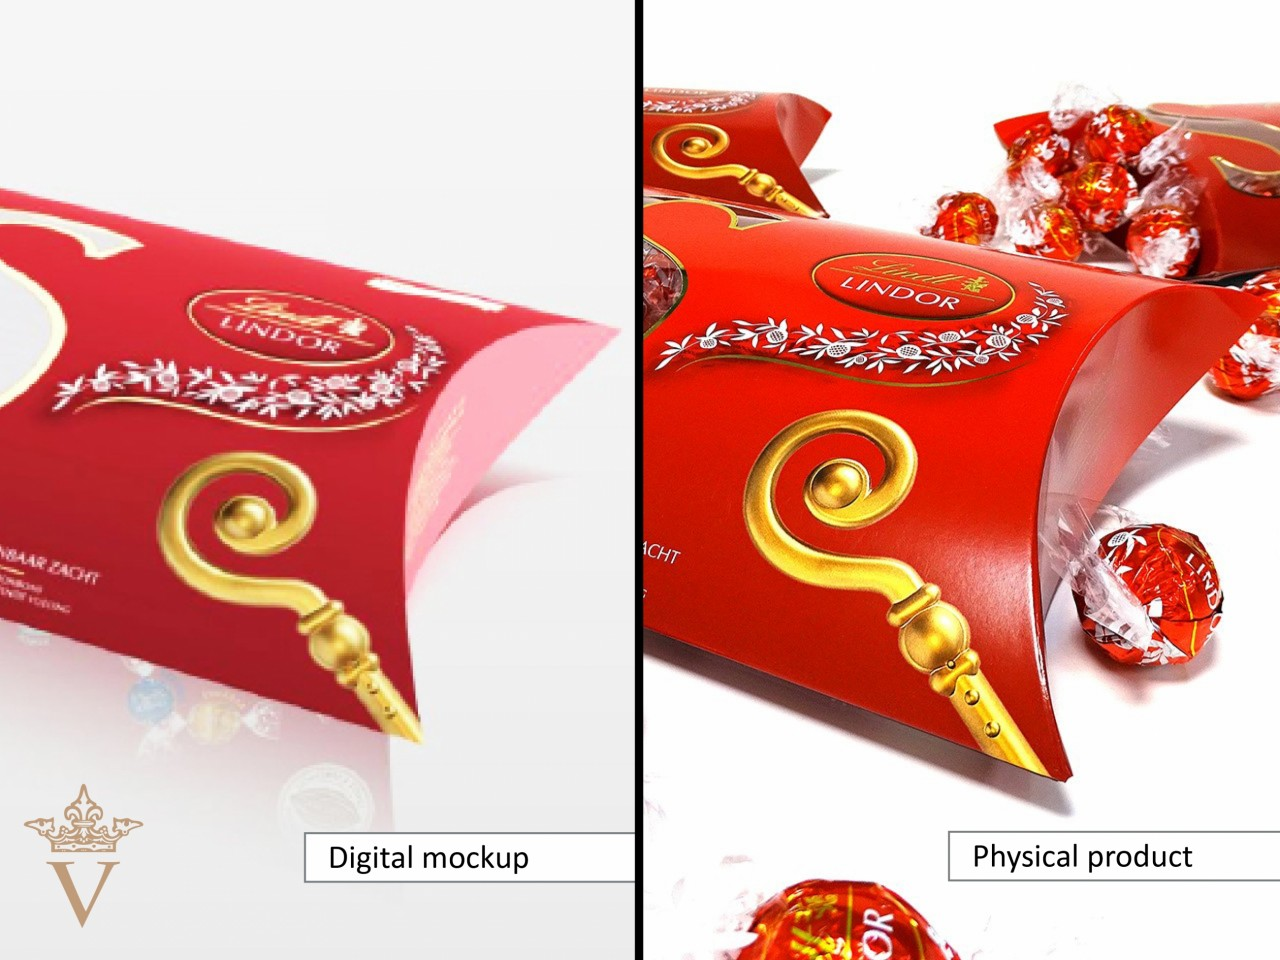 Lindt vouwkartonnage - 3D digitale mock-up vs. een fysiek prototype